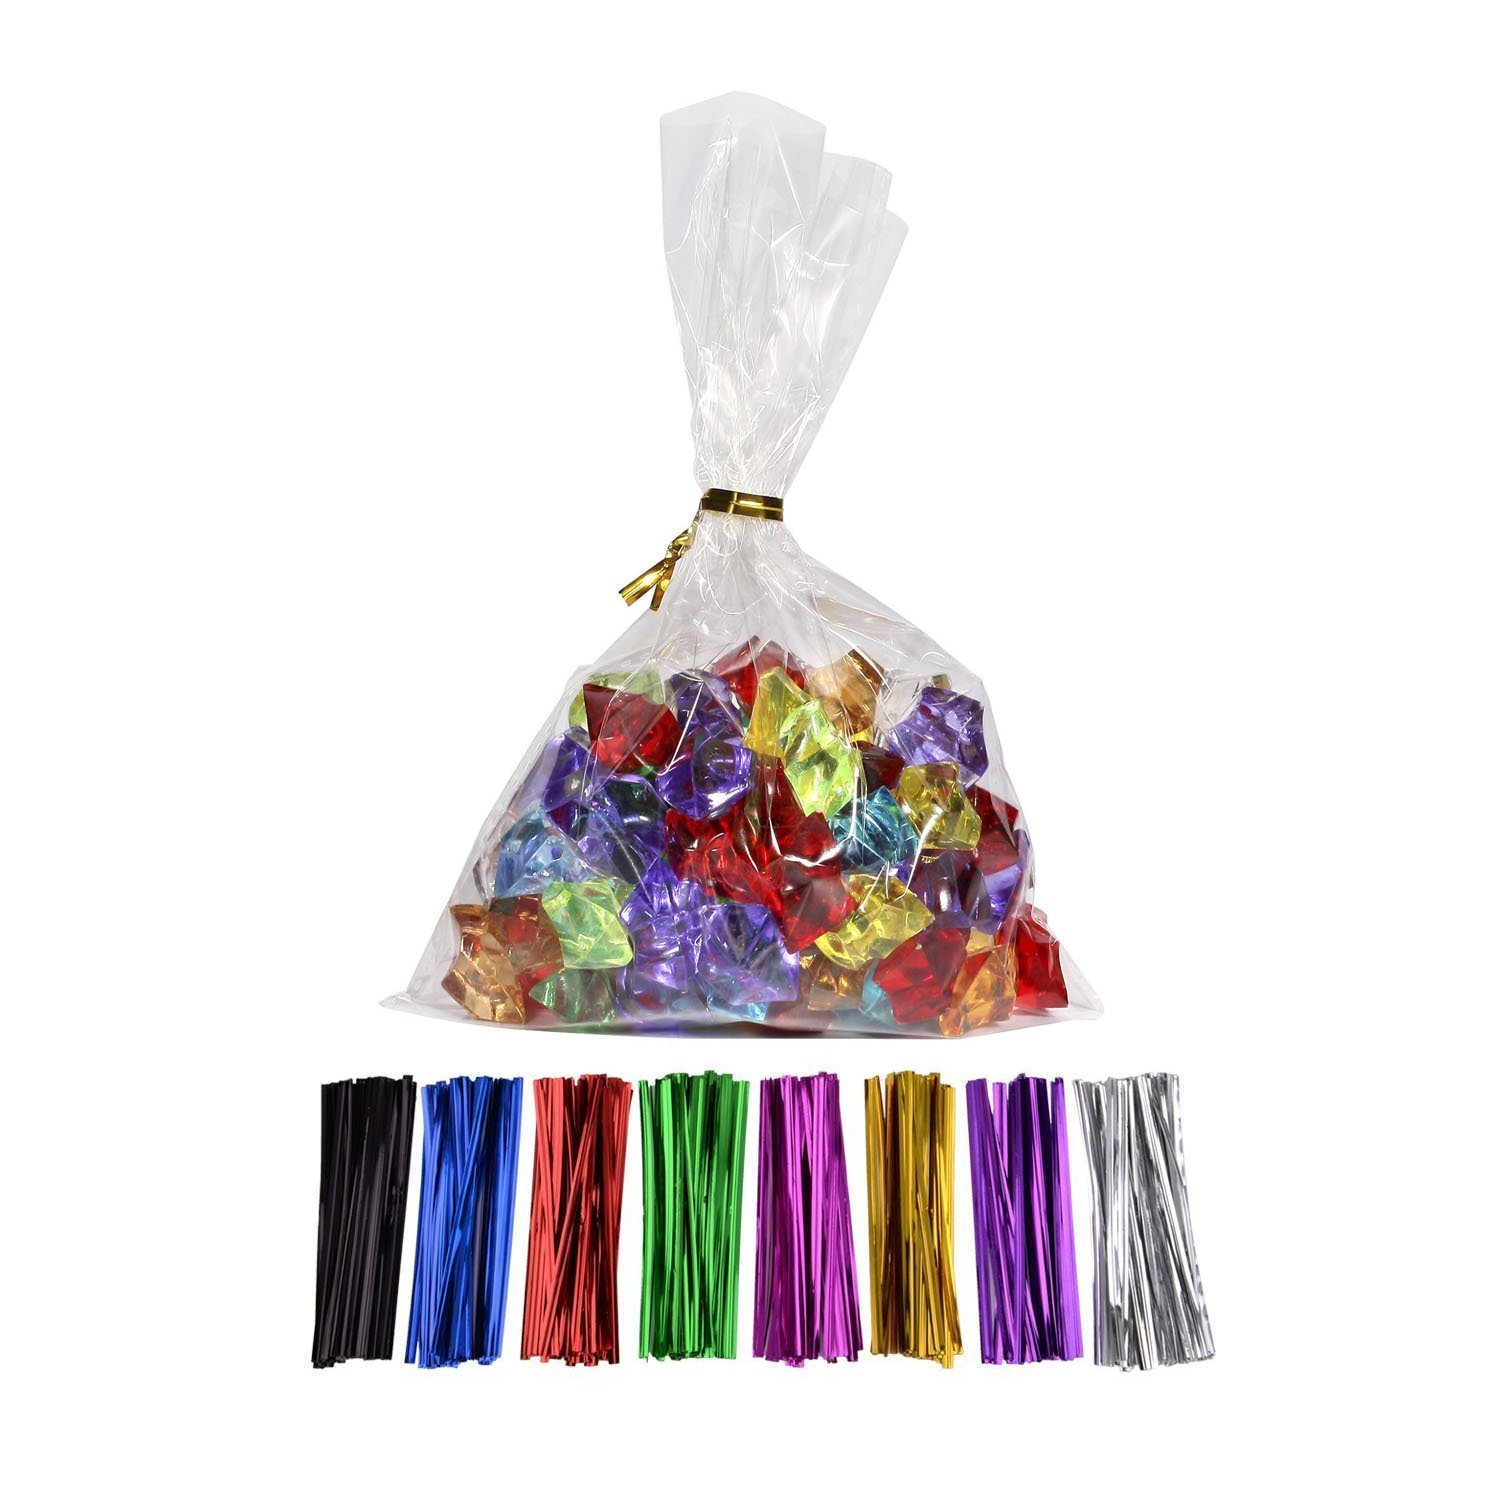 "MoloTAR 100 Pcs 10 in x 6 in(1.4mil.) Clear Flat Cello Cellophane Treat Bags Good for Bakery, Cookies, Candies,Dessert with one random color Twist Ties! 6"" x 10"""